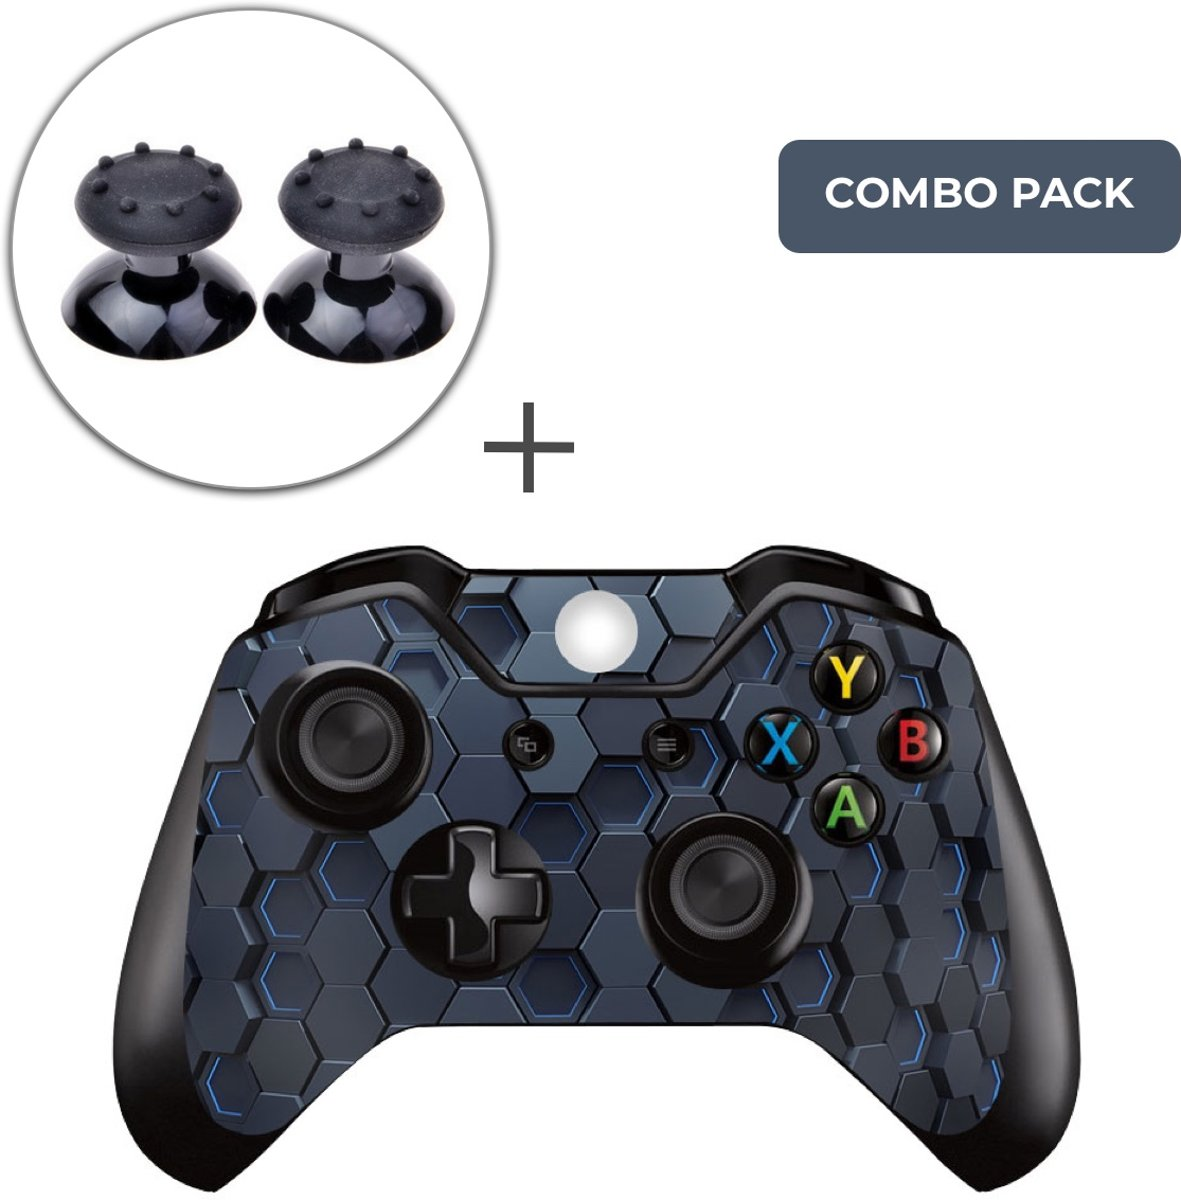 Hex 3D Combo Pack - Xbox One Controller Skins Stickers + Thumb Grips